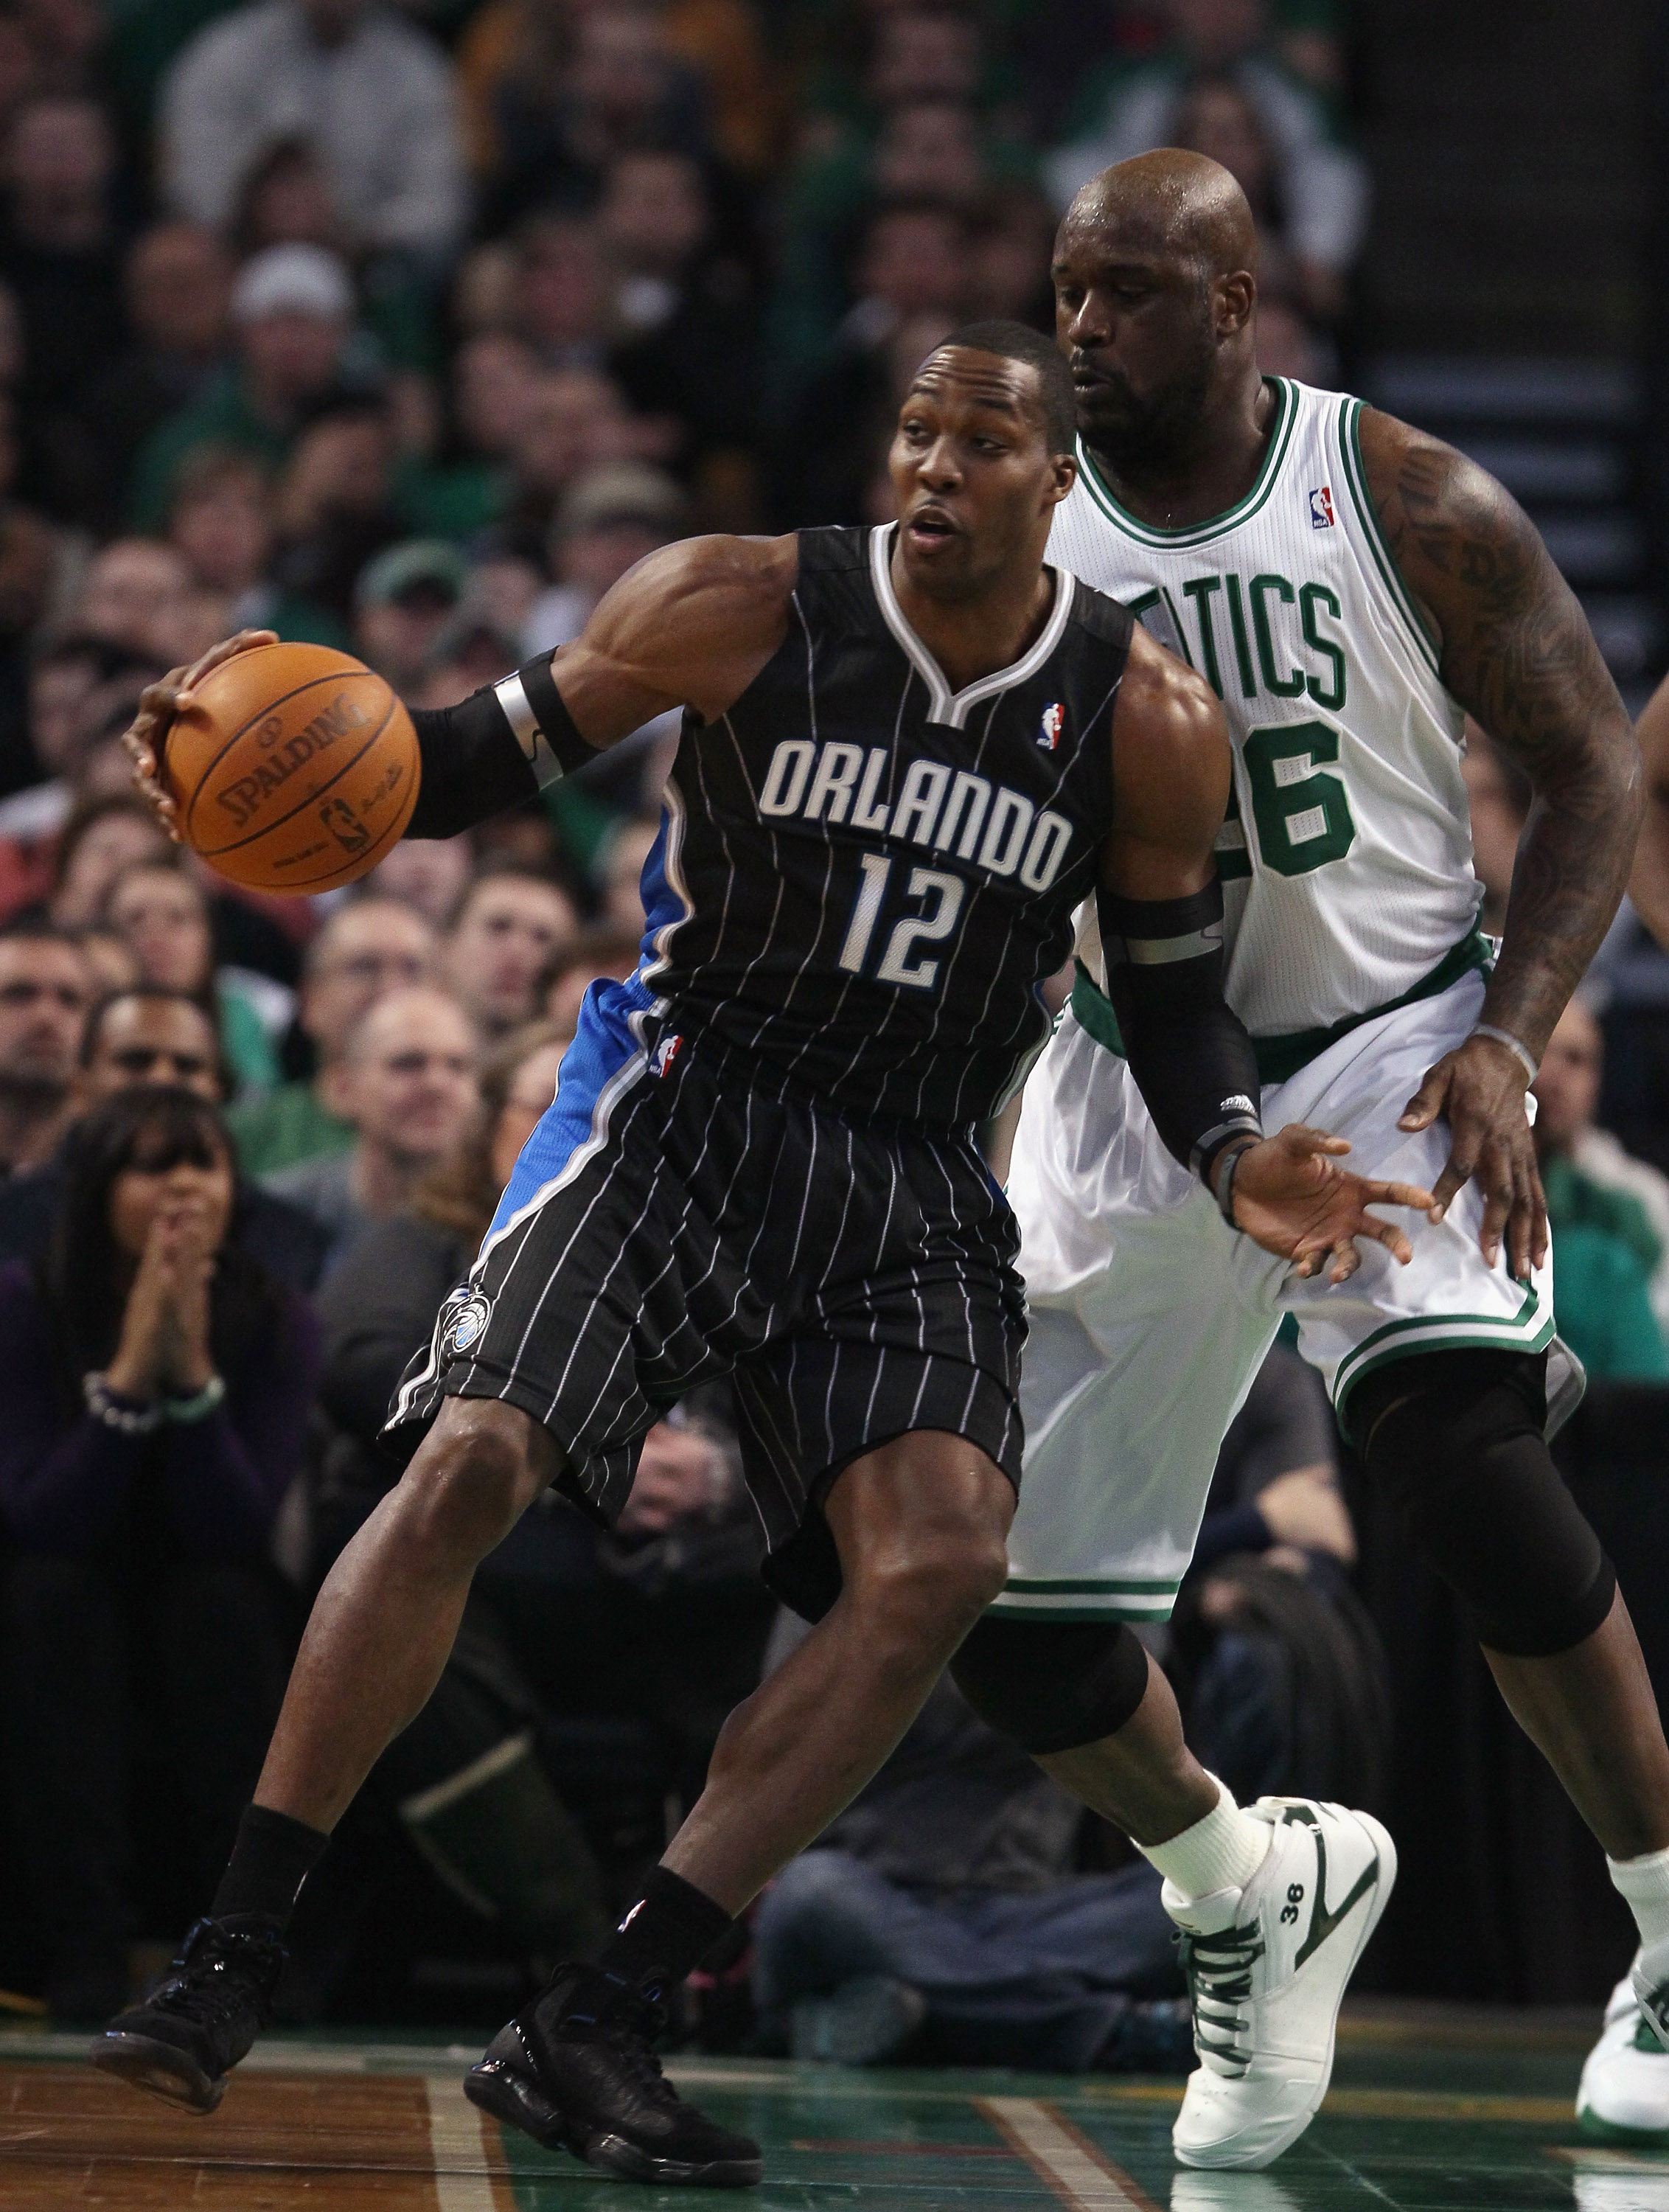 BOSTON, MA - JANUARY 17:  Dwight Howard #12 of the Orlando Magic tries to get around Shaquille O'Neal #36 of the Boston Celtics on January 17, 2011 at the TD Garden in Boston, Massachusetts.  NOTE TO USER: User expressly acknowledges and agrees that, by d